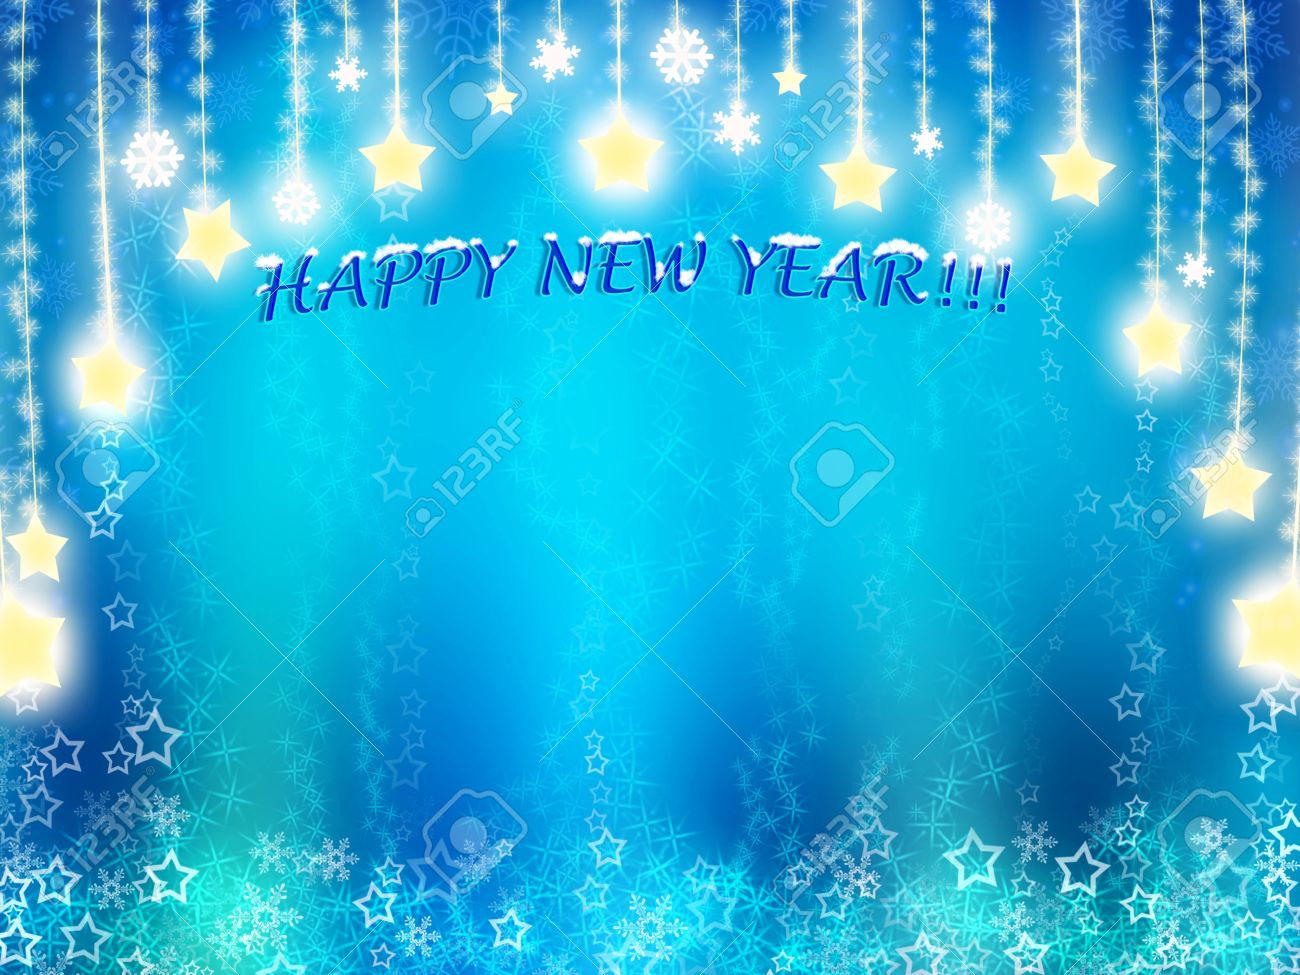 happy new year background in blue tones with stars stock photo 16126391